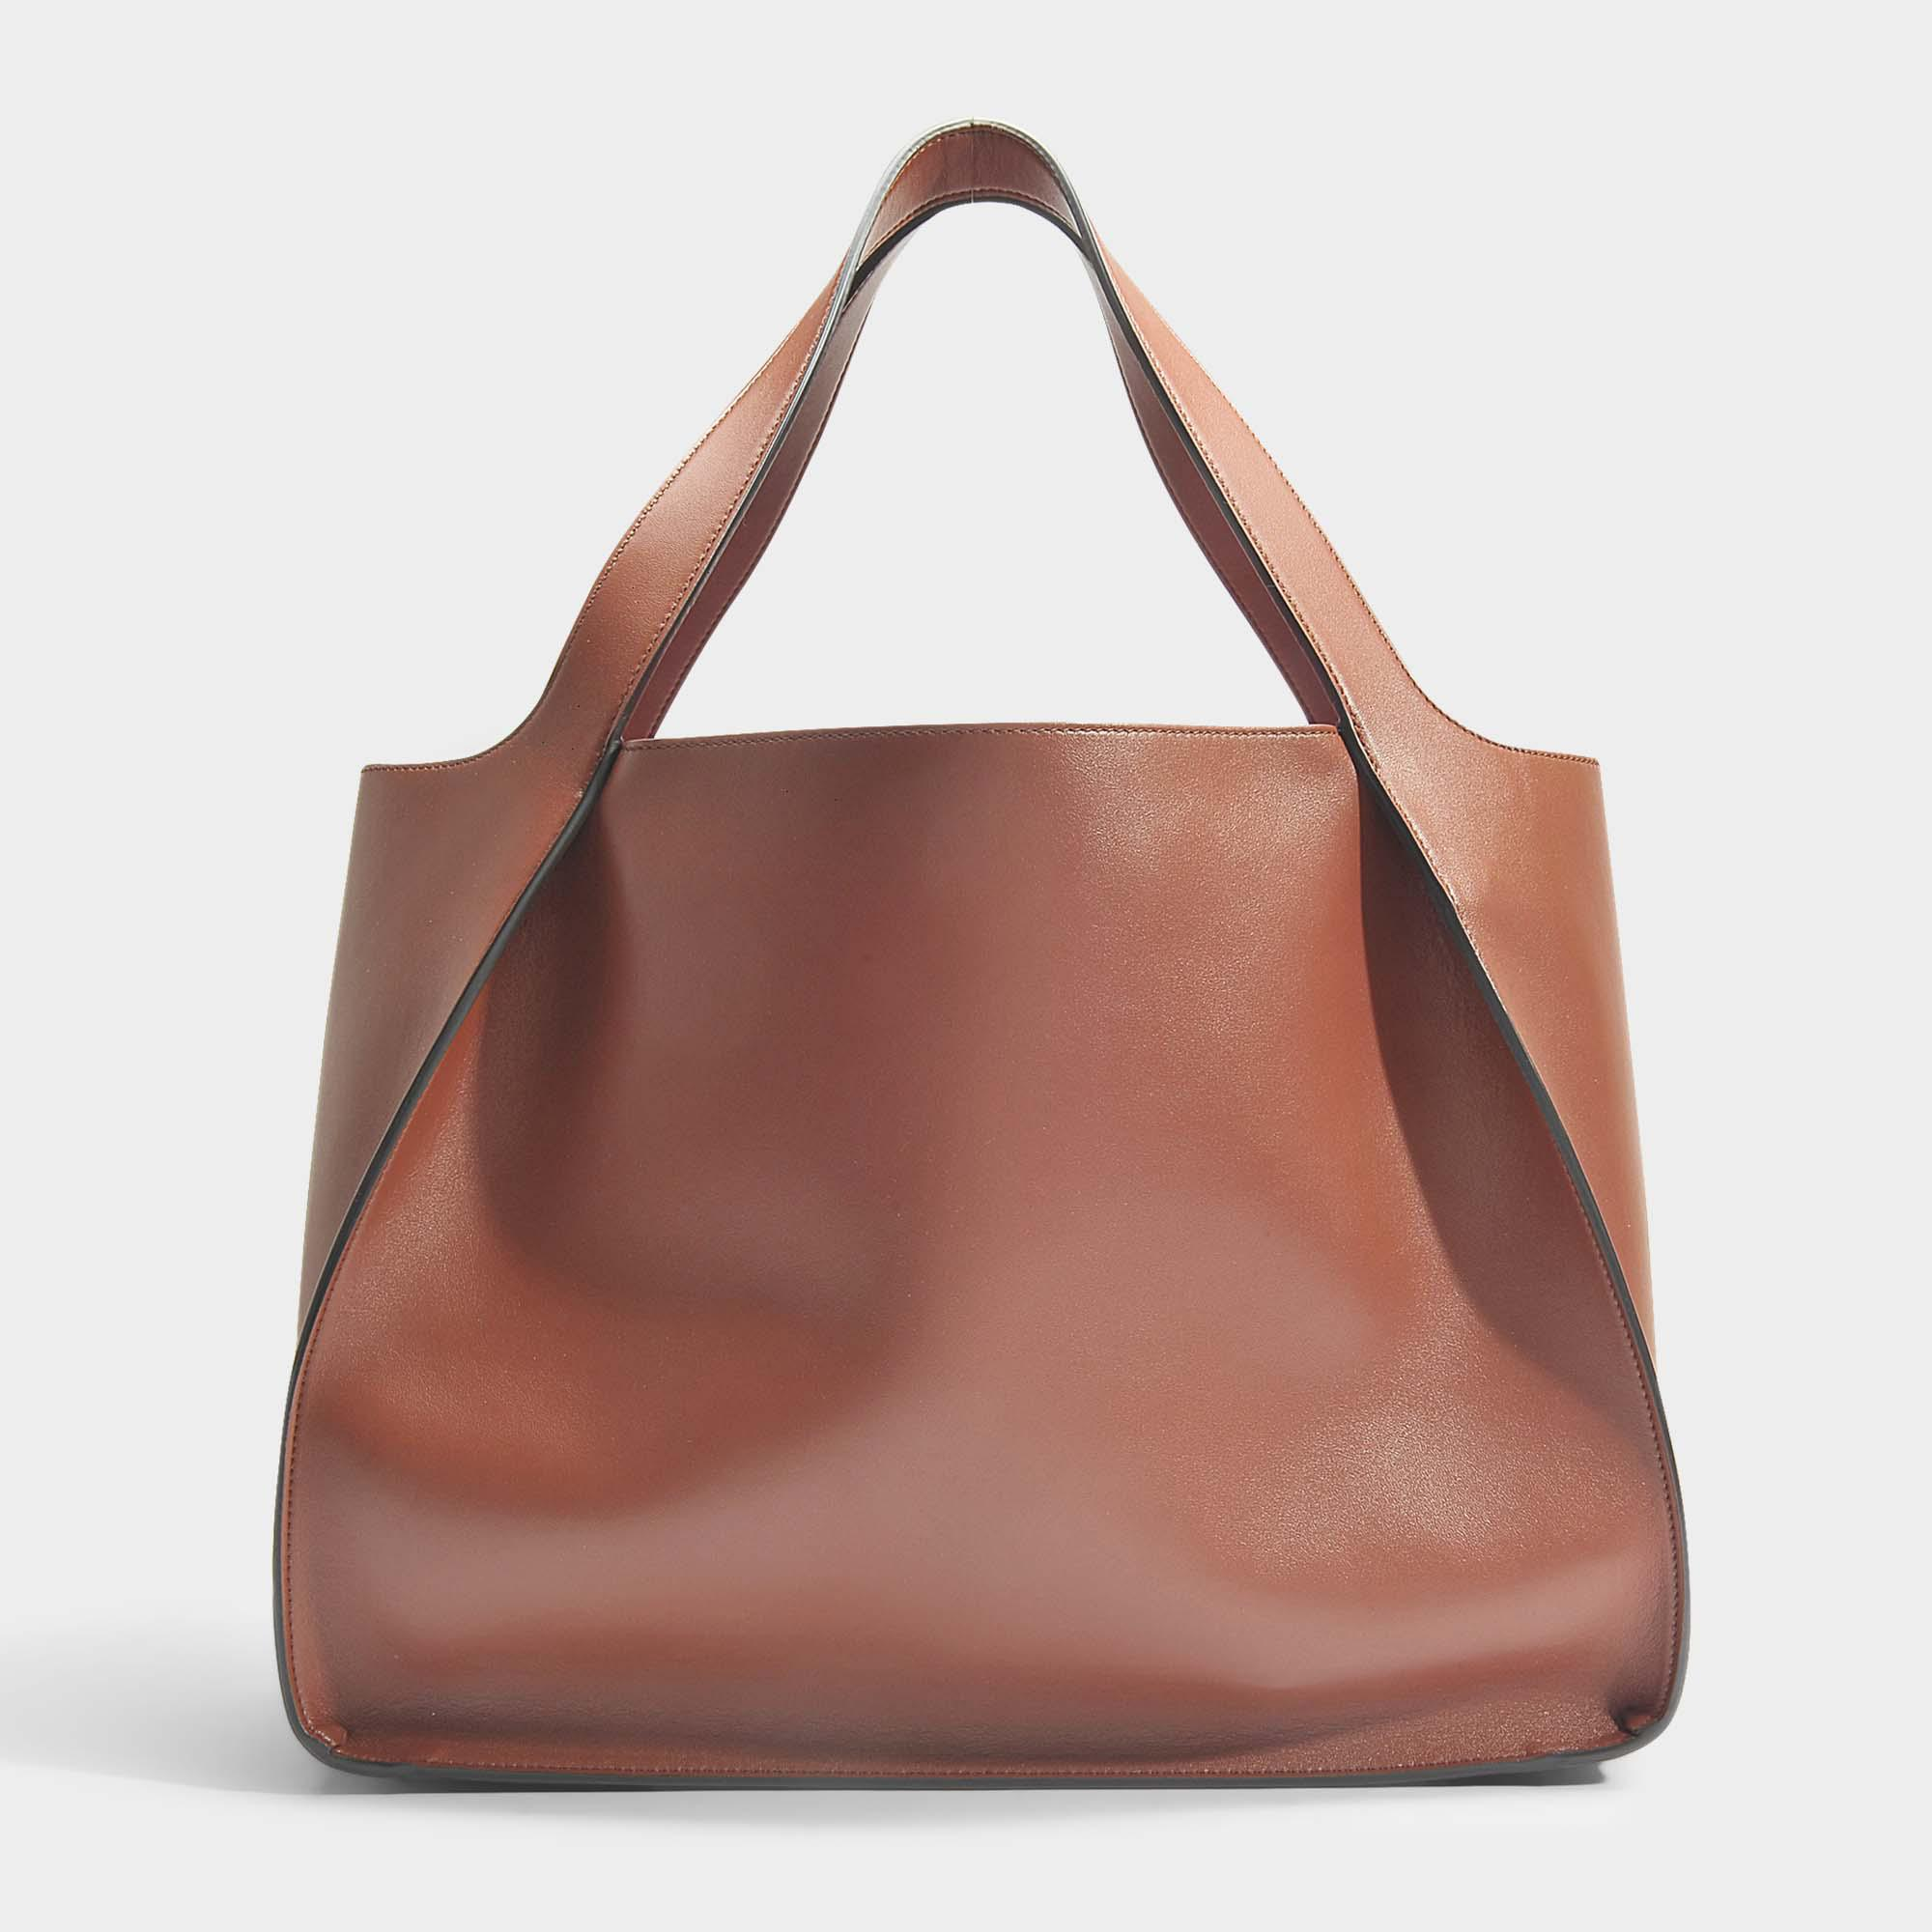 63eb8a0c55a7 Lyst - Stella Mccartney Logo Bag Alter Nappa Small Tote In Brown ...